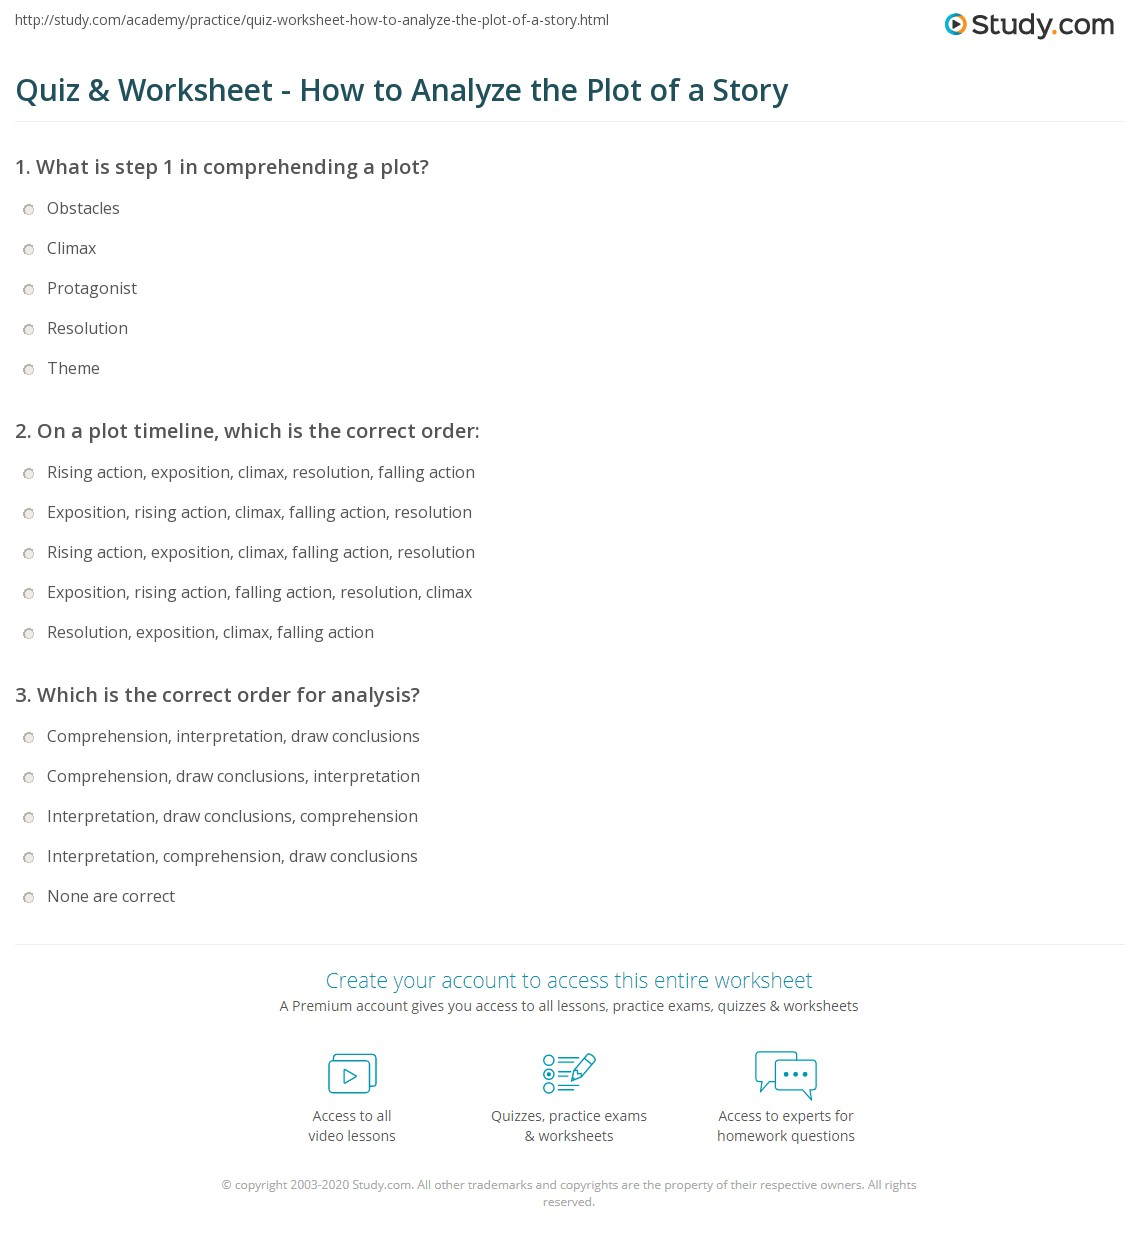 Quiz & Worksheet - How to Analyze the Plot of a Story | Study.com